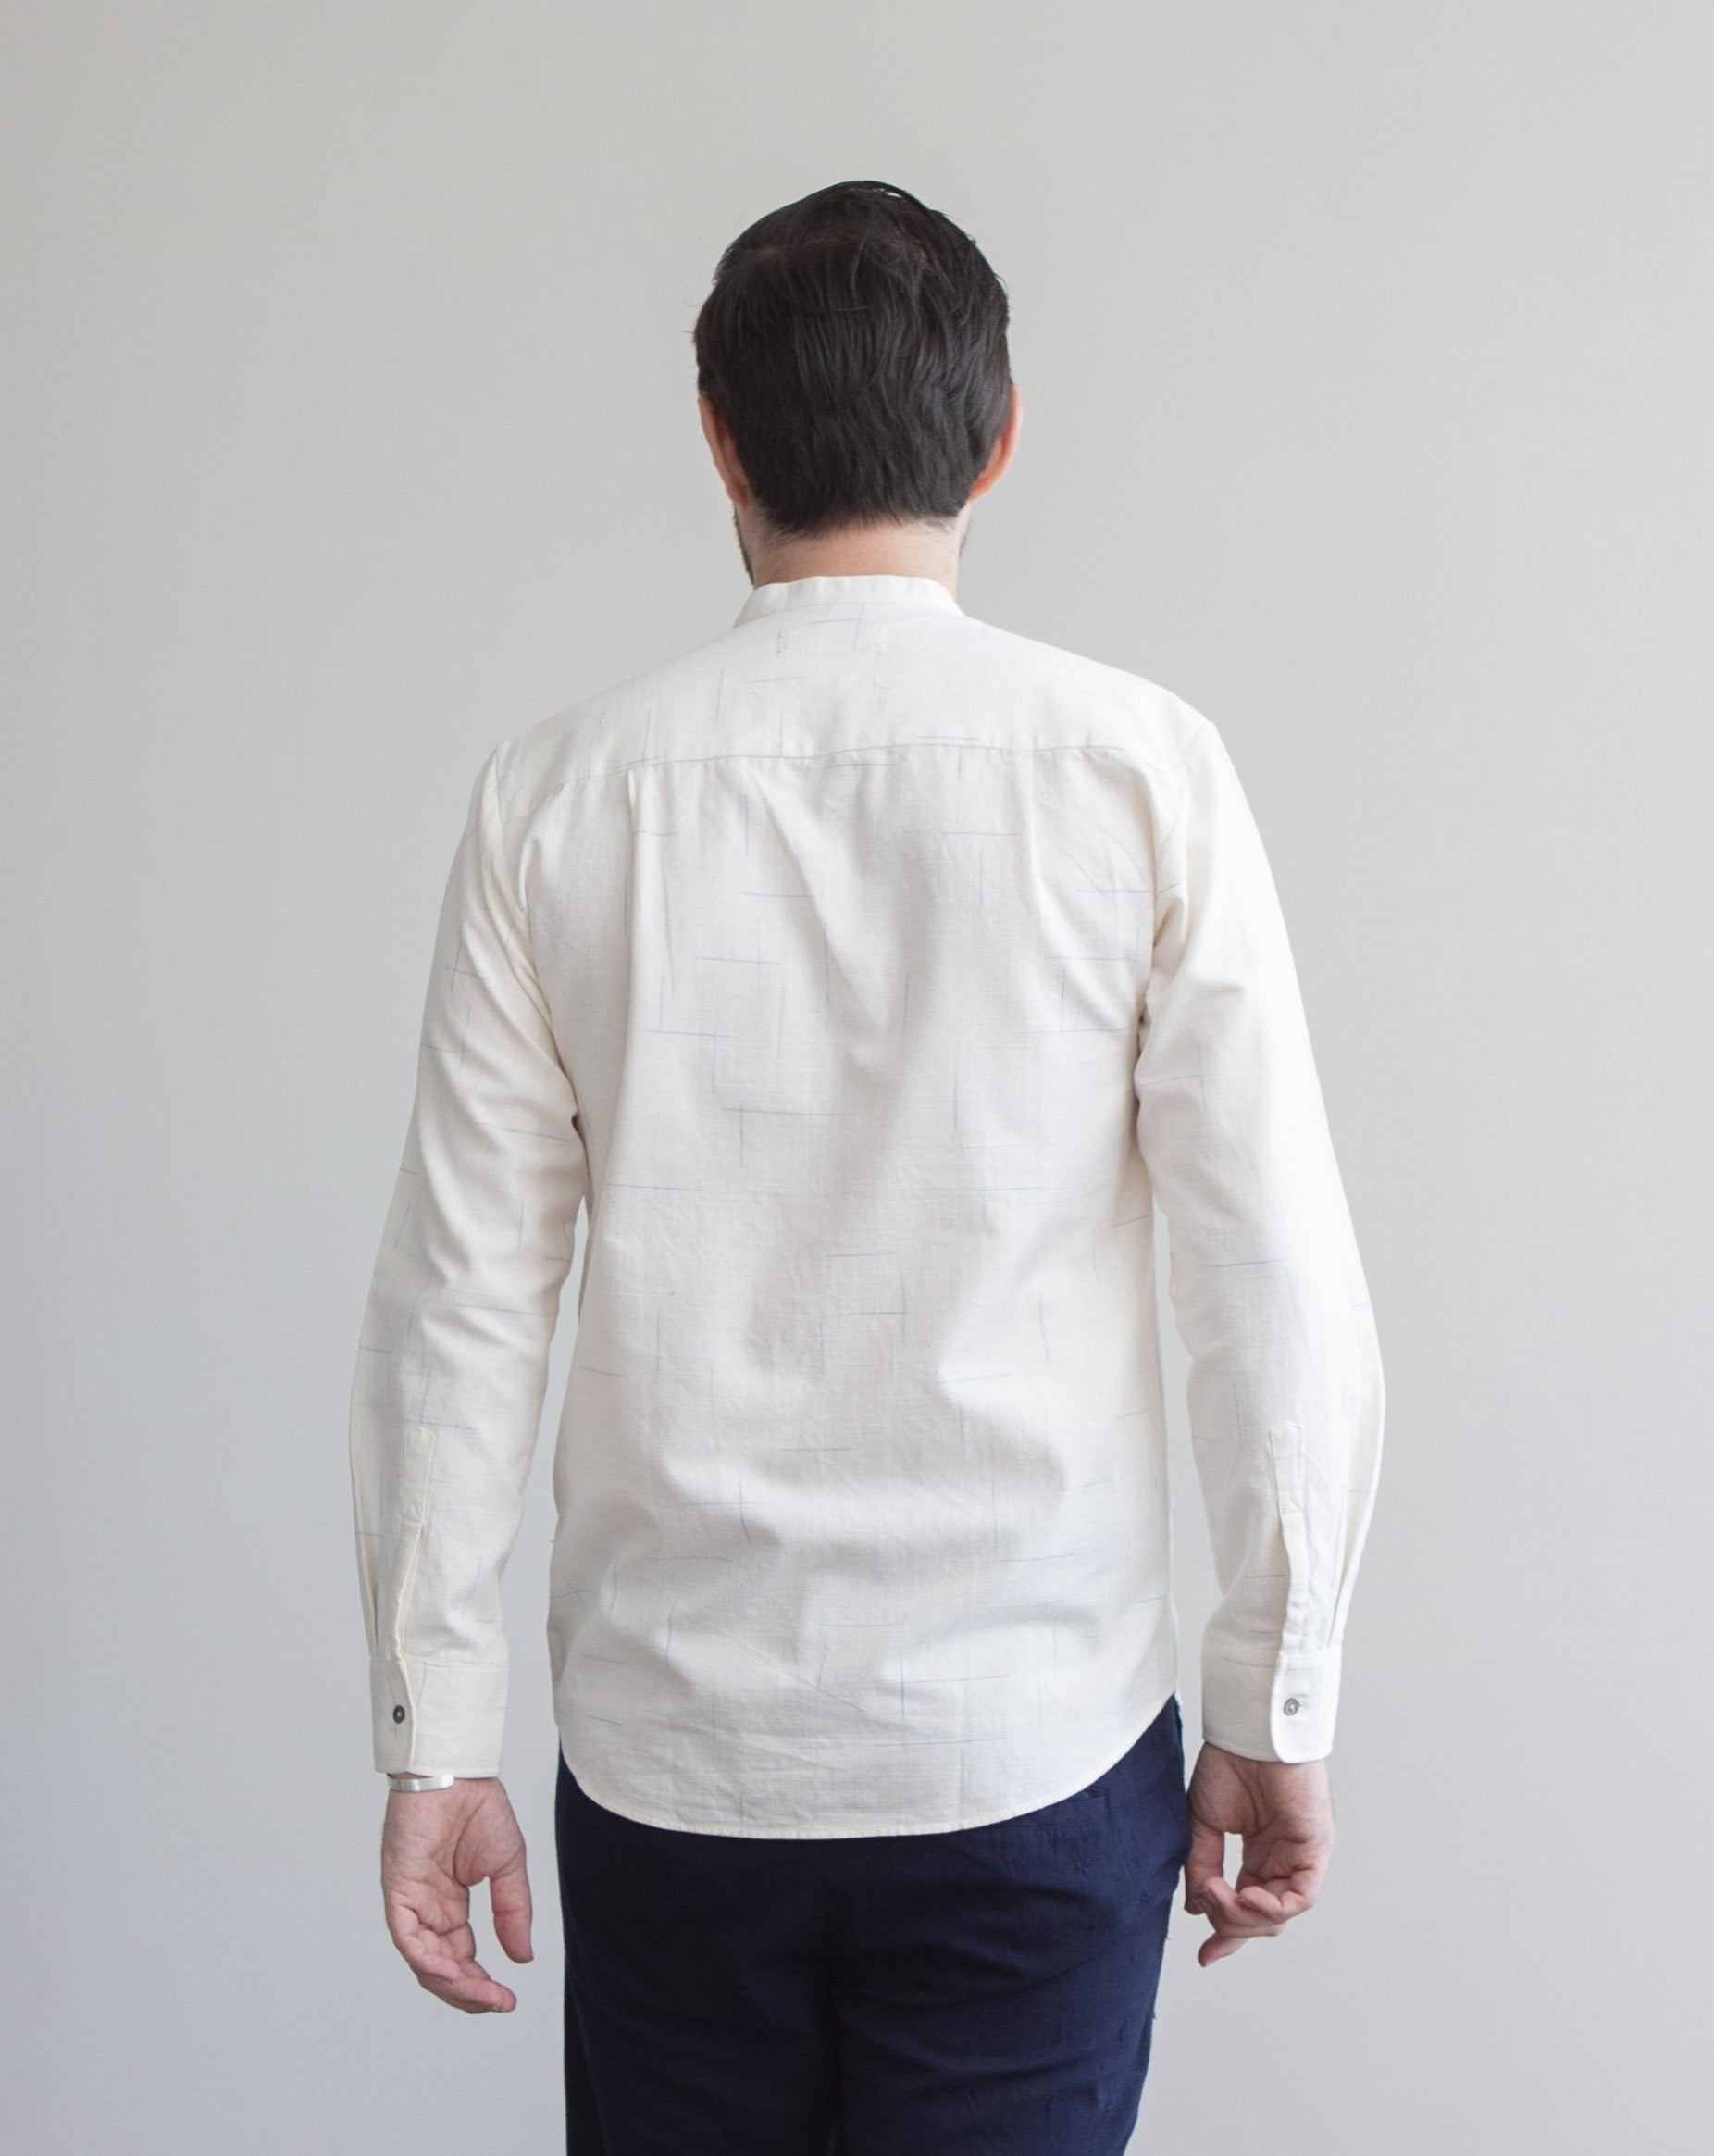 PAGISENJA - Fitted Shirt